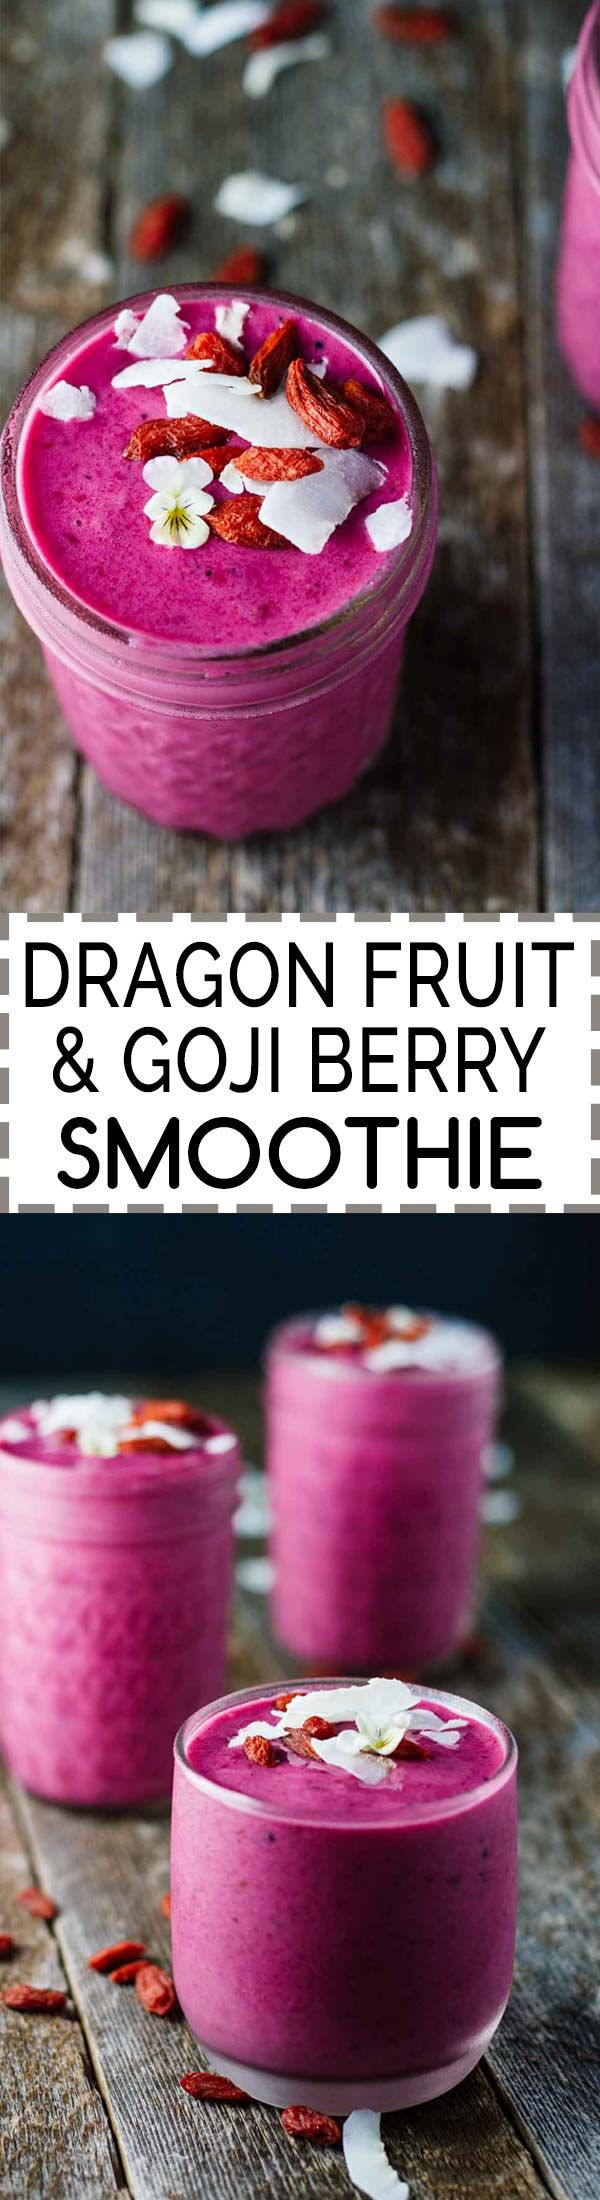 Dragon Fruit & Goji Berry Smoothie! This recipe is on www.JarOfLemons.com and is Vegan, Gluten-Free, Dairy-Free, and Refined Sugar Free. Click through for more post-workout recovery options and a @Thermos Shaker Bottle giveaway!